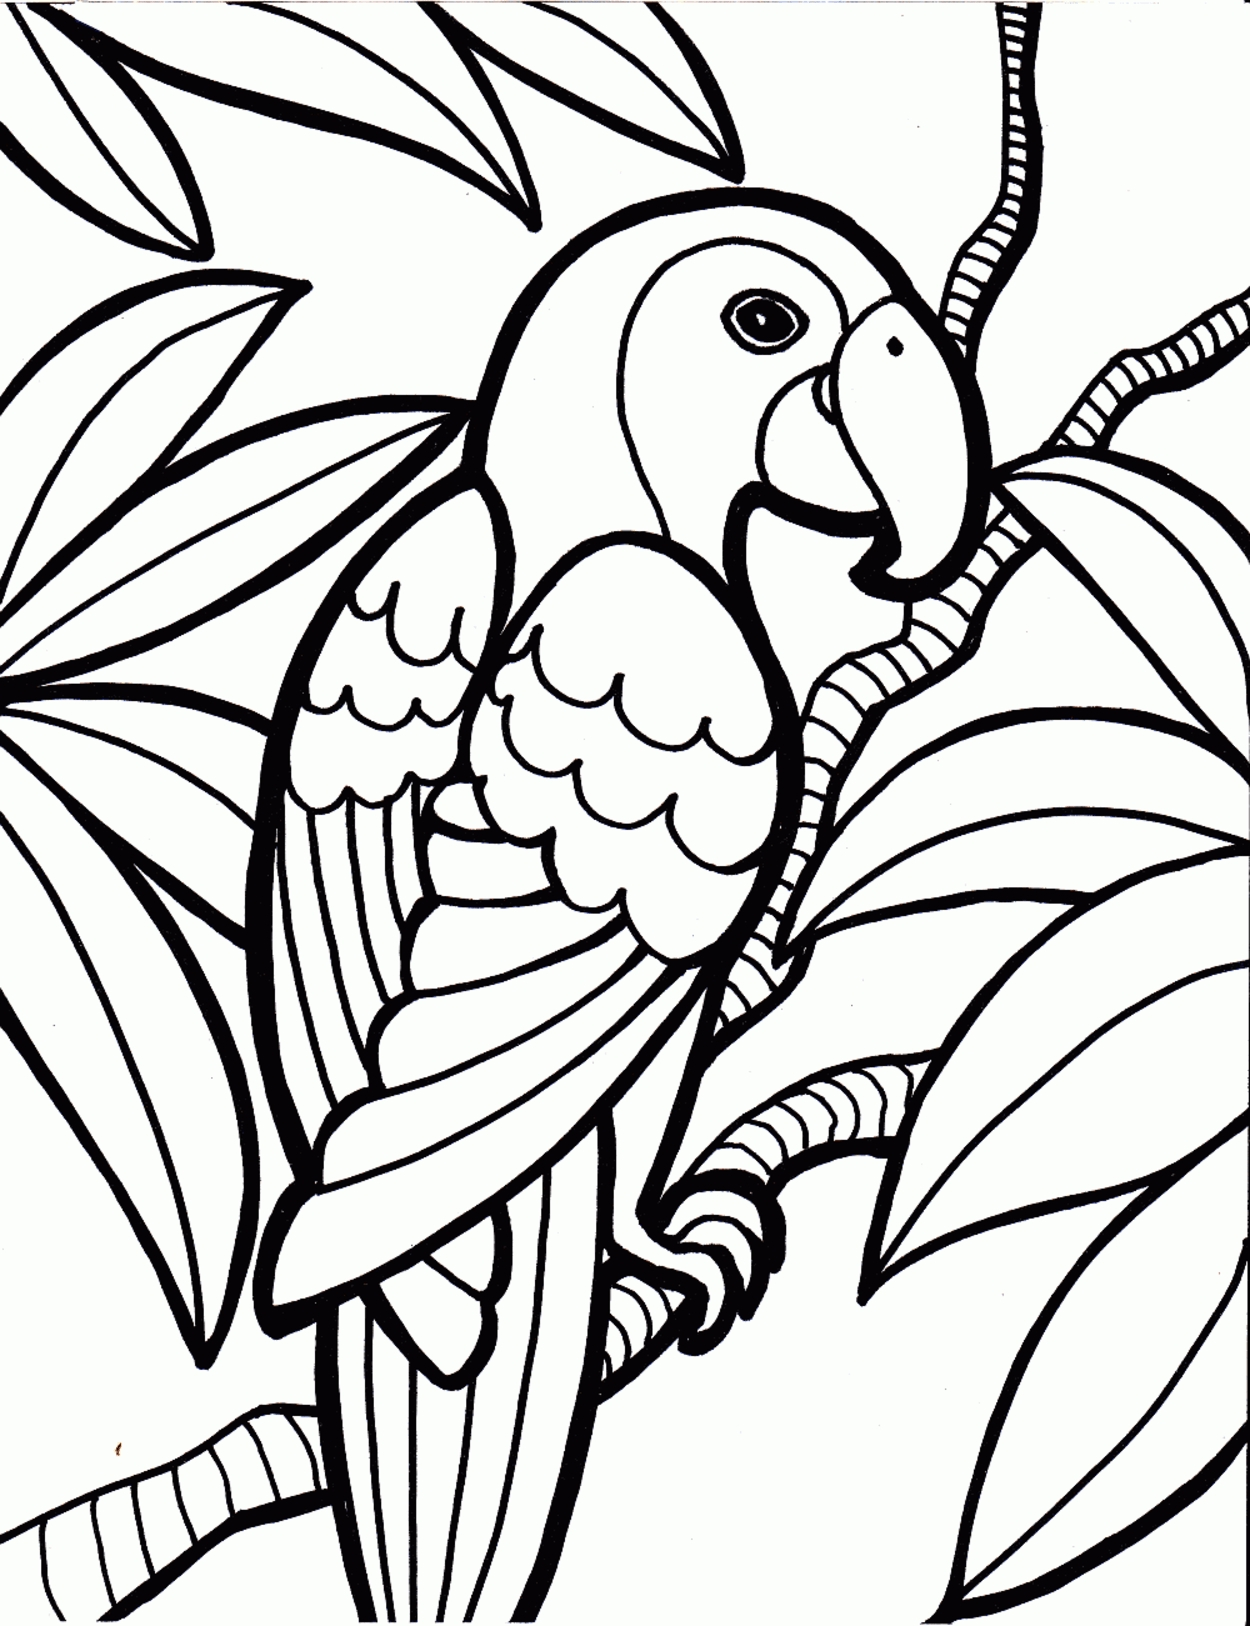 1250x1626 Awesome Bird Coloring Page Design Printable Coloring Sheet